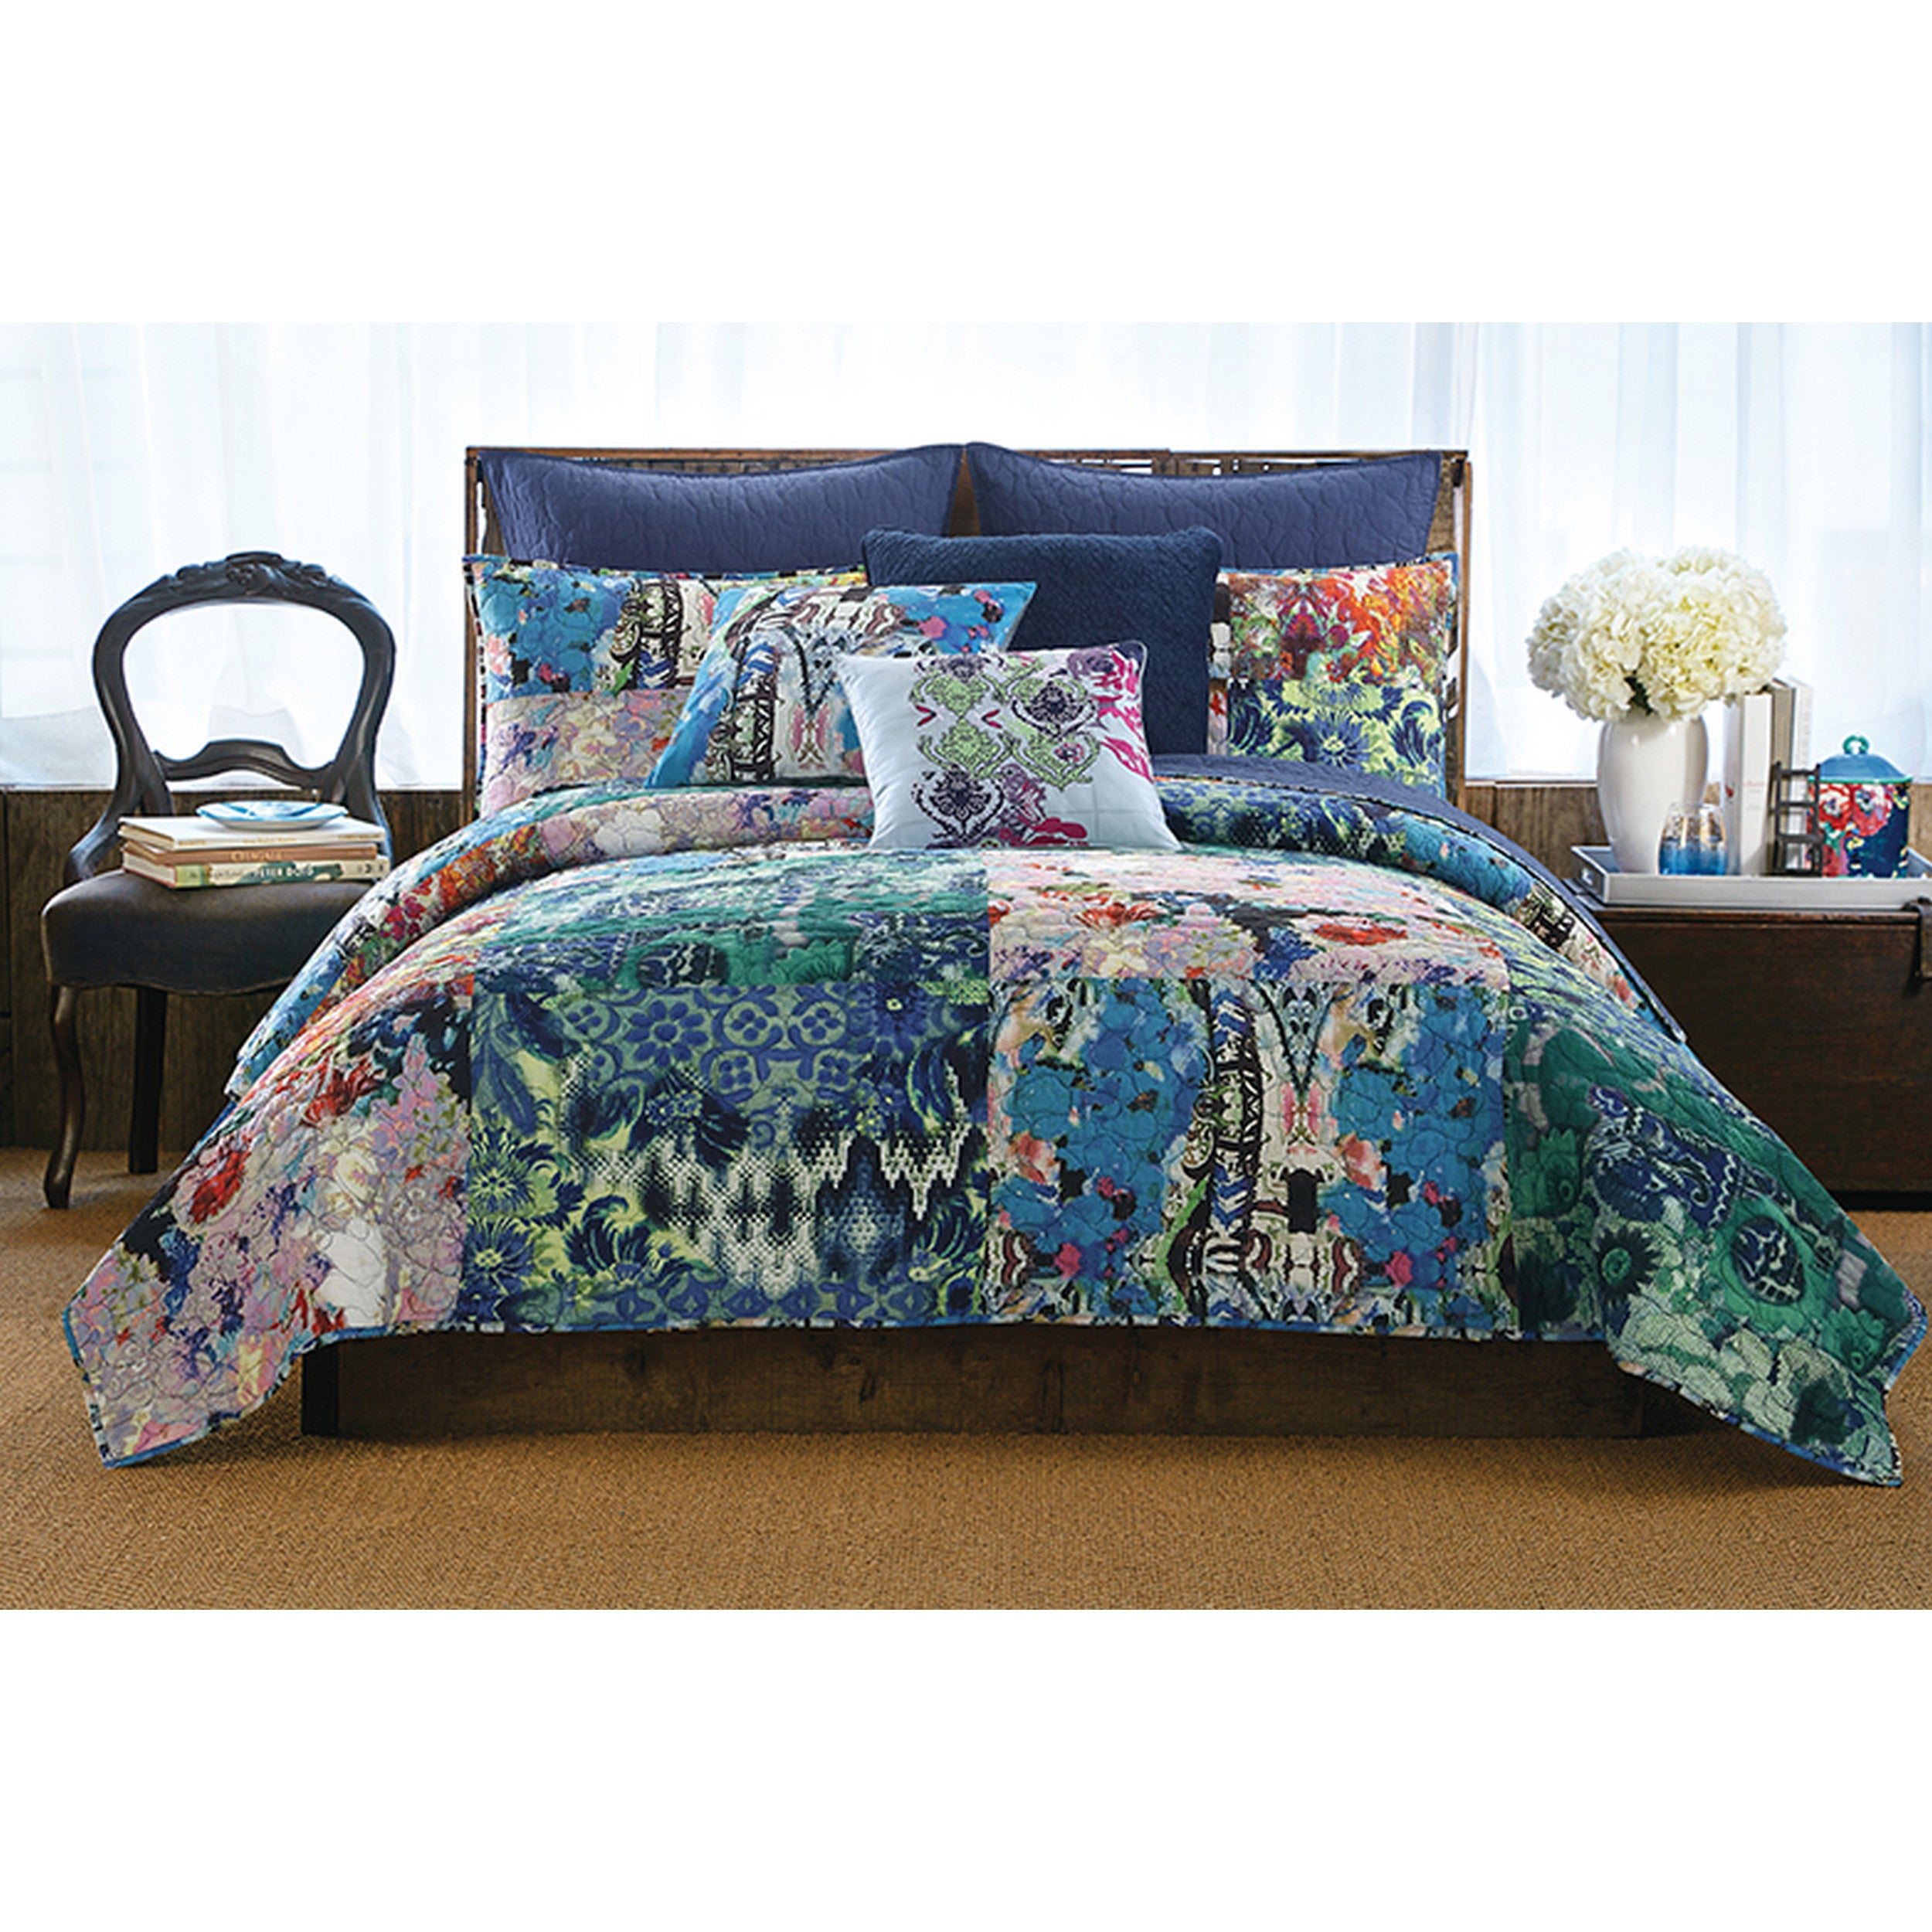 Tracy Porter Iris Floral Printed Quilt (Sham Sold Separately)   Free  Shipping Today   Overstock   24179690